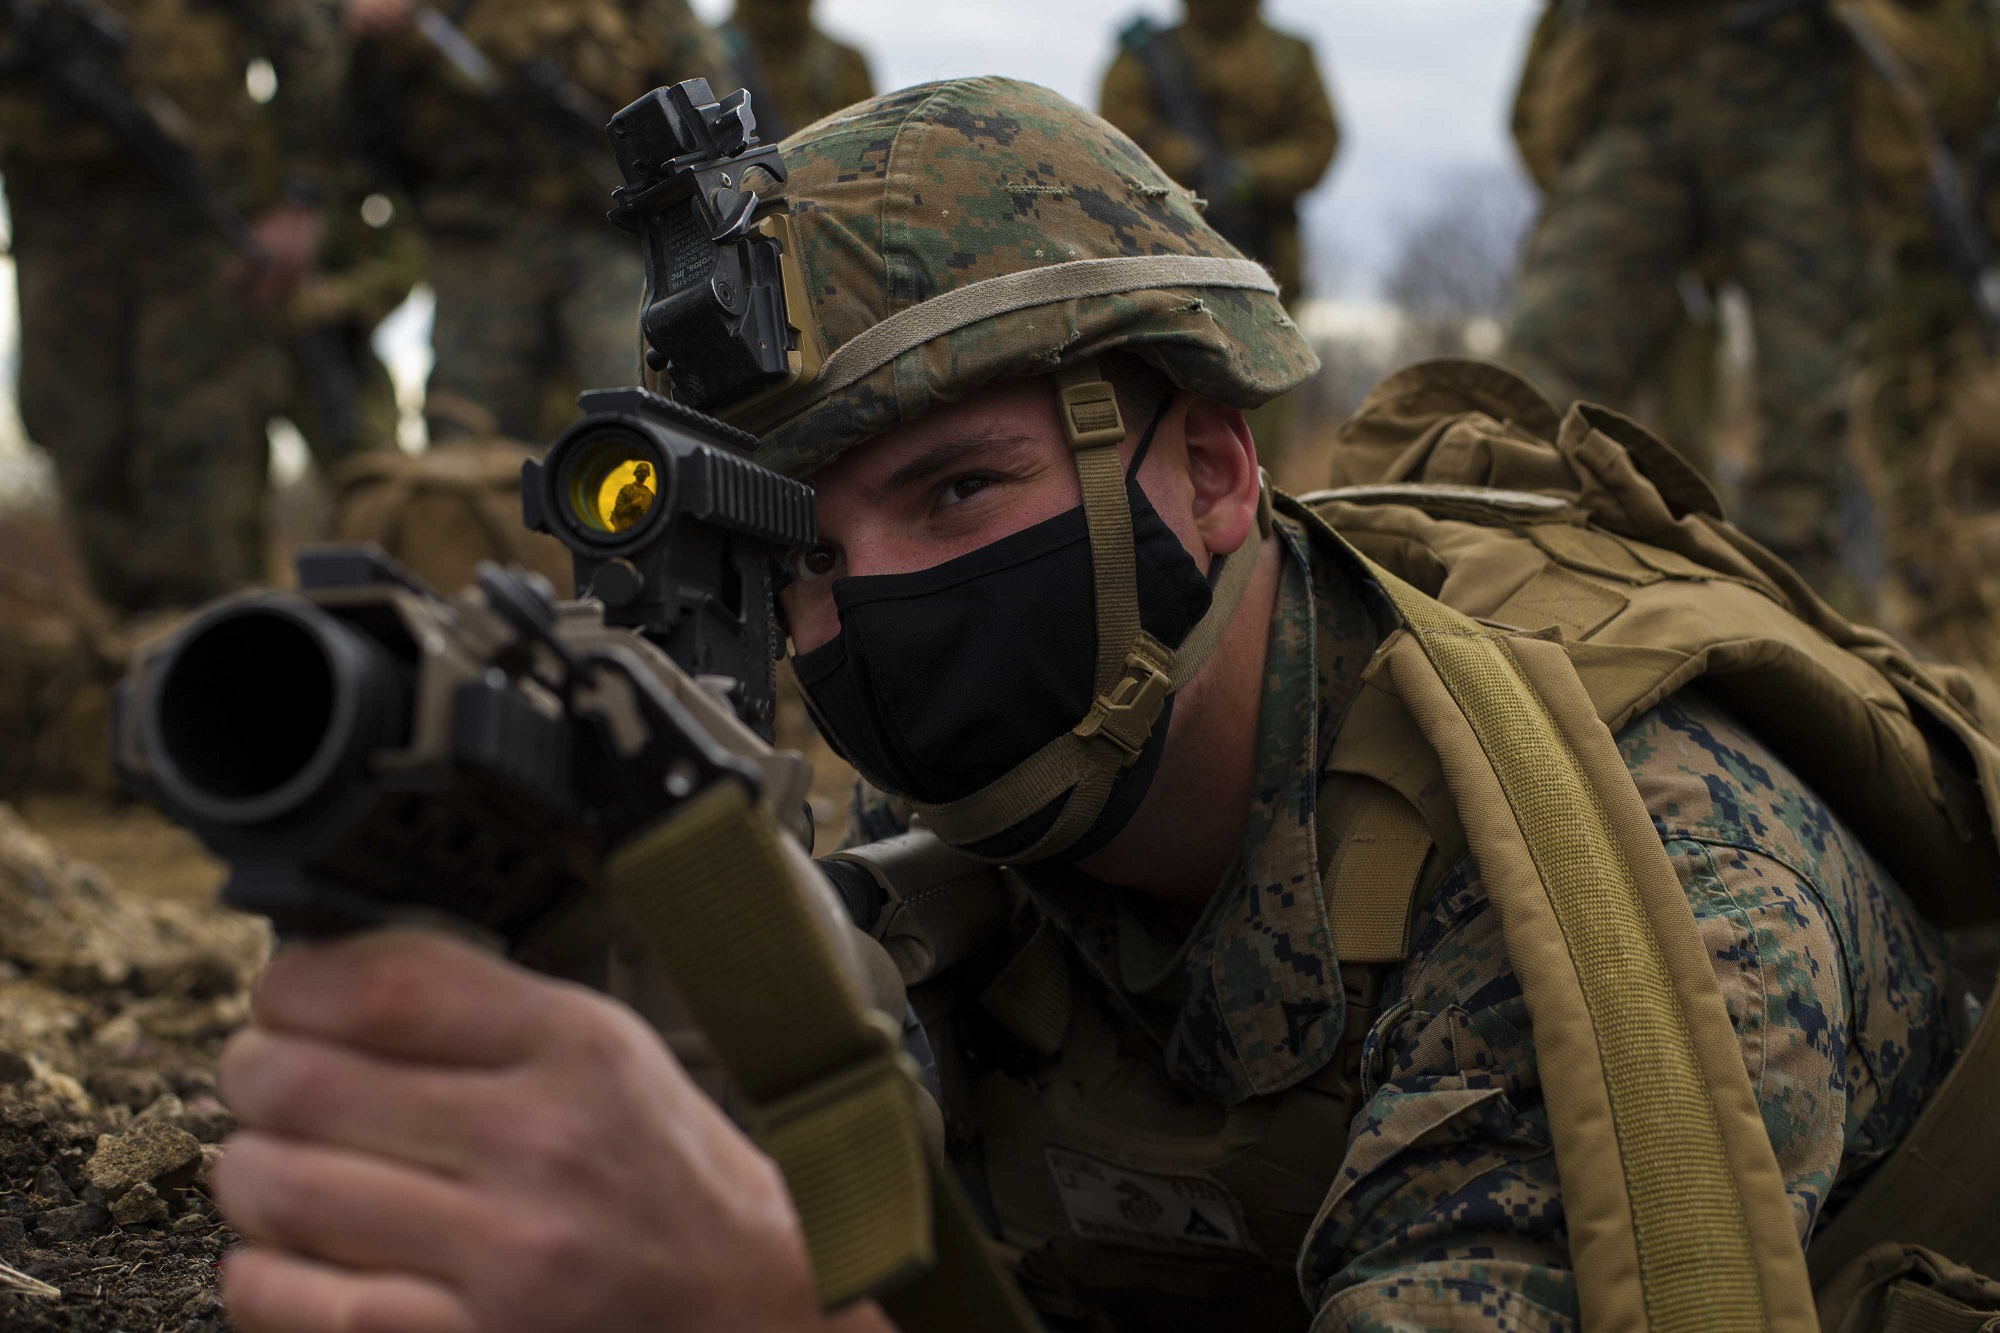 Marine Corps Lance Cpl. Lucas Mitchell looks through the scope of an M32 multi-grenade launcher in Niigata, Japan, Dec. 10, 2020, during Forest Light, an annual bilateral exercise with U.S. and Japanese forces. (Lance Cpl. Jonathan Willcox/Marine Corps)